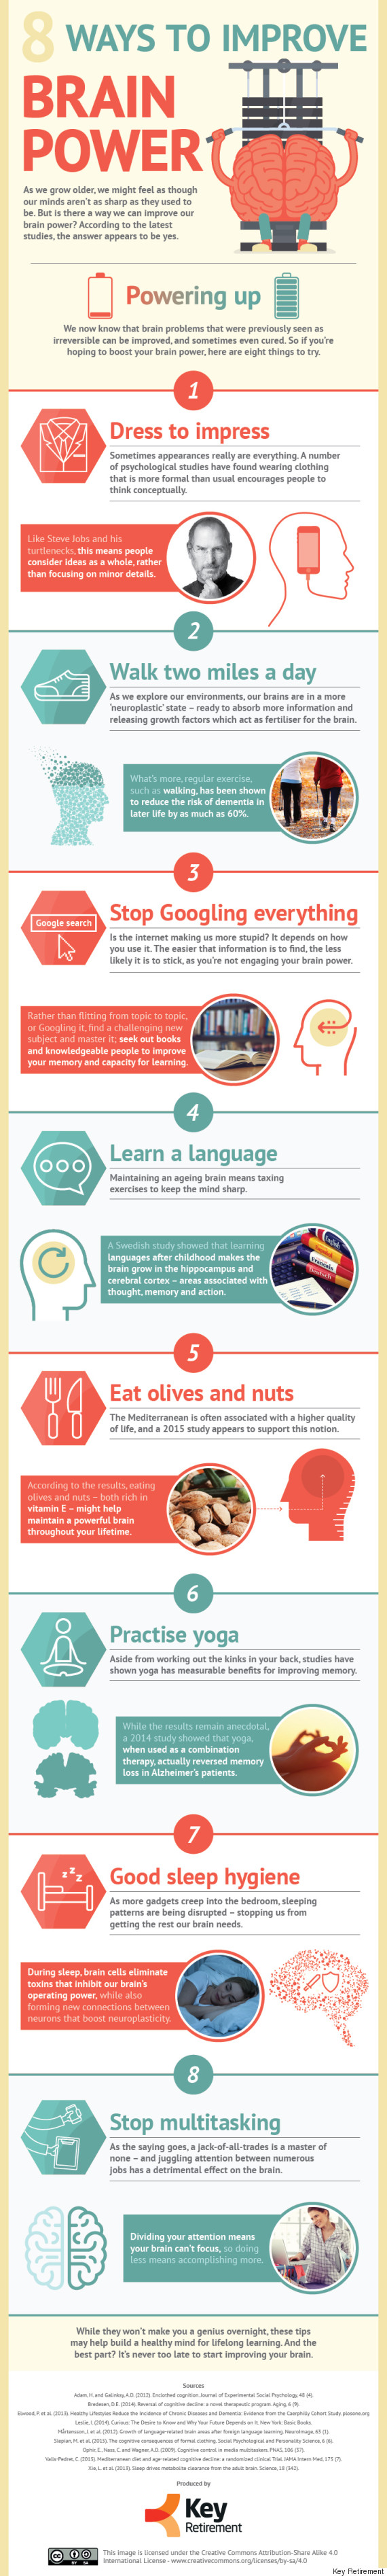 8 ways to improve brain